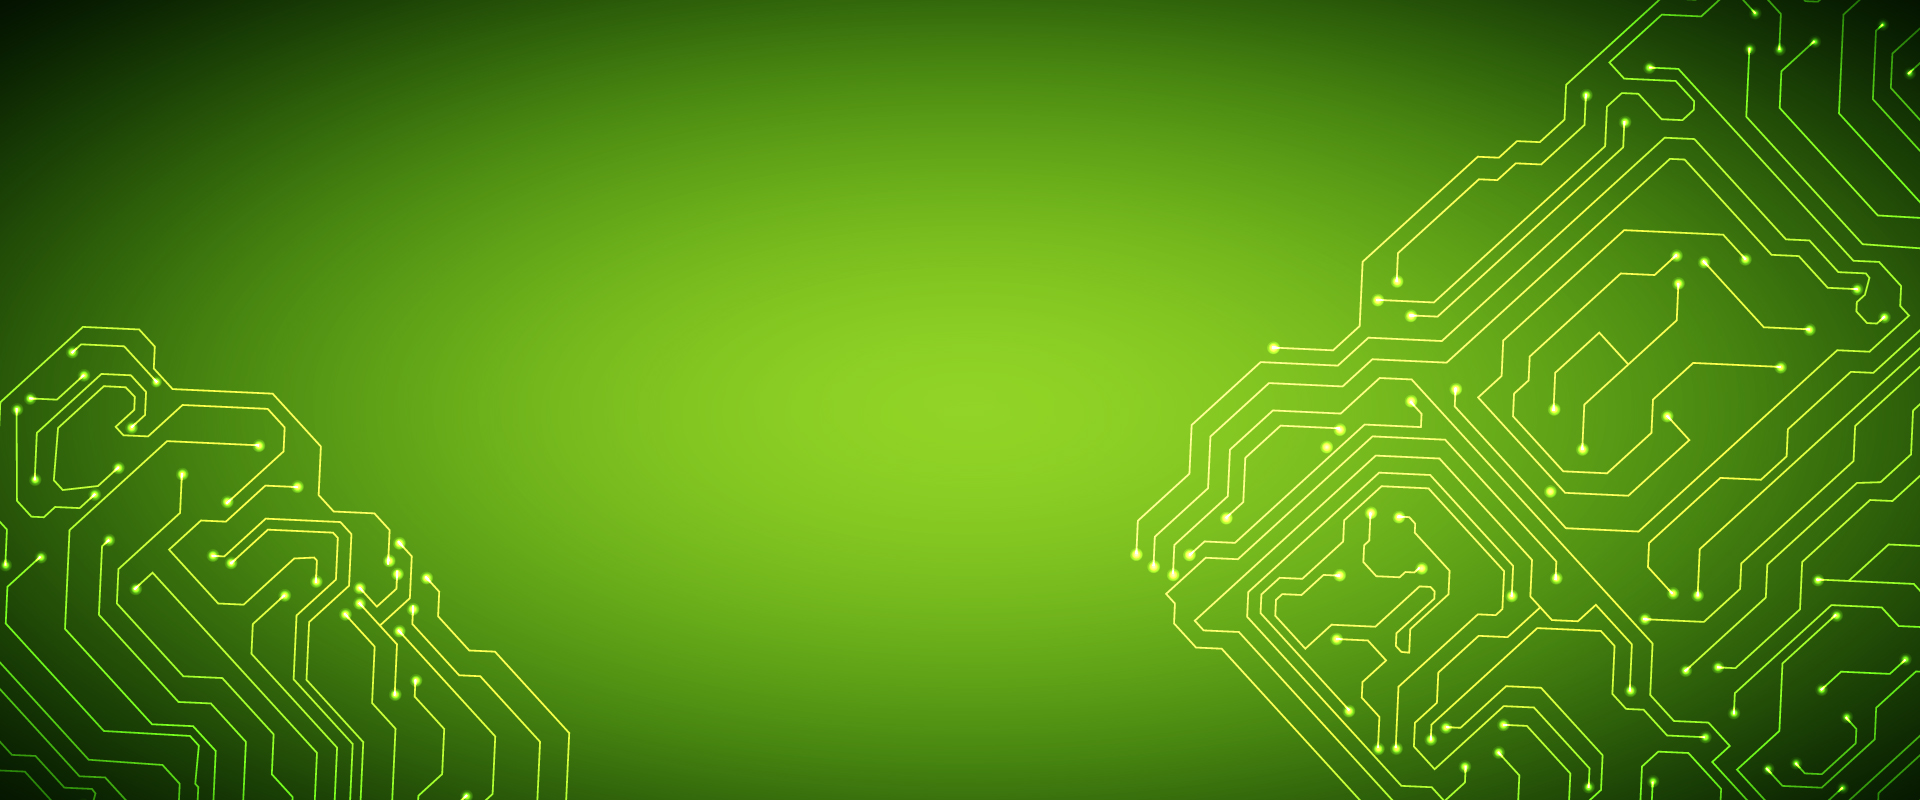 Green Technology Circuit Board Background Poster Banner Science Vector Ai Free Graphics Download Image For